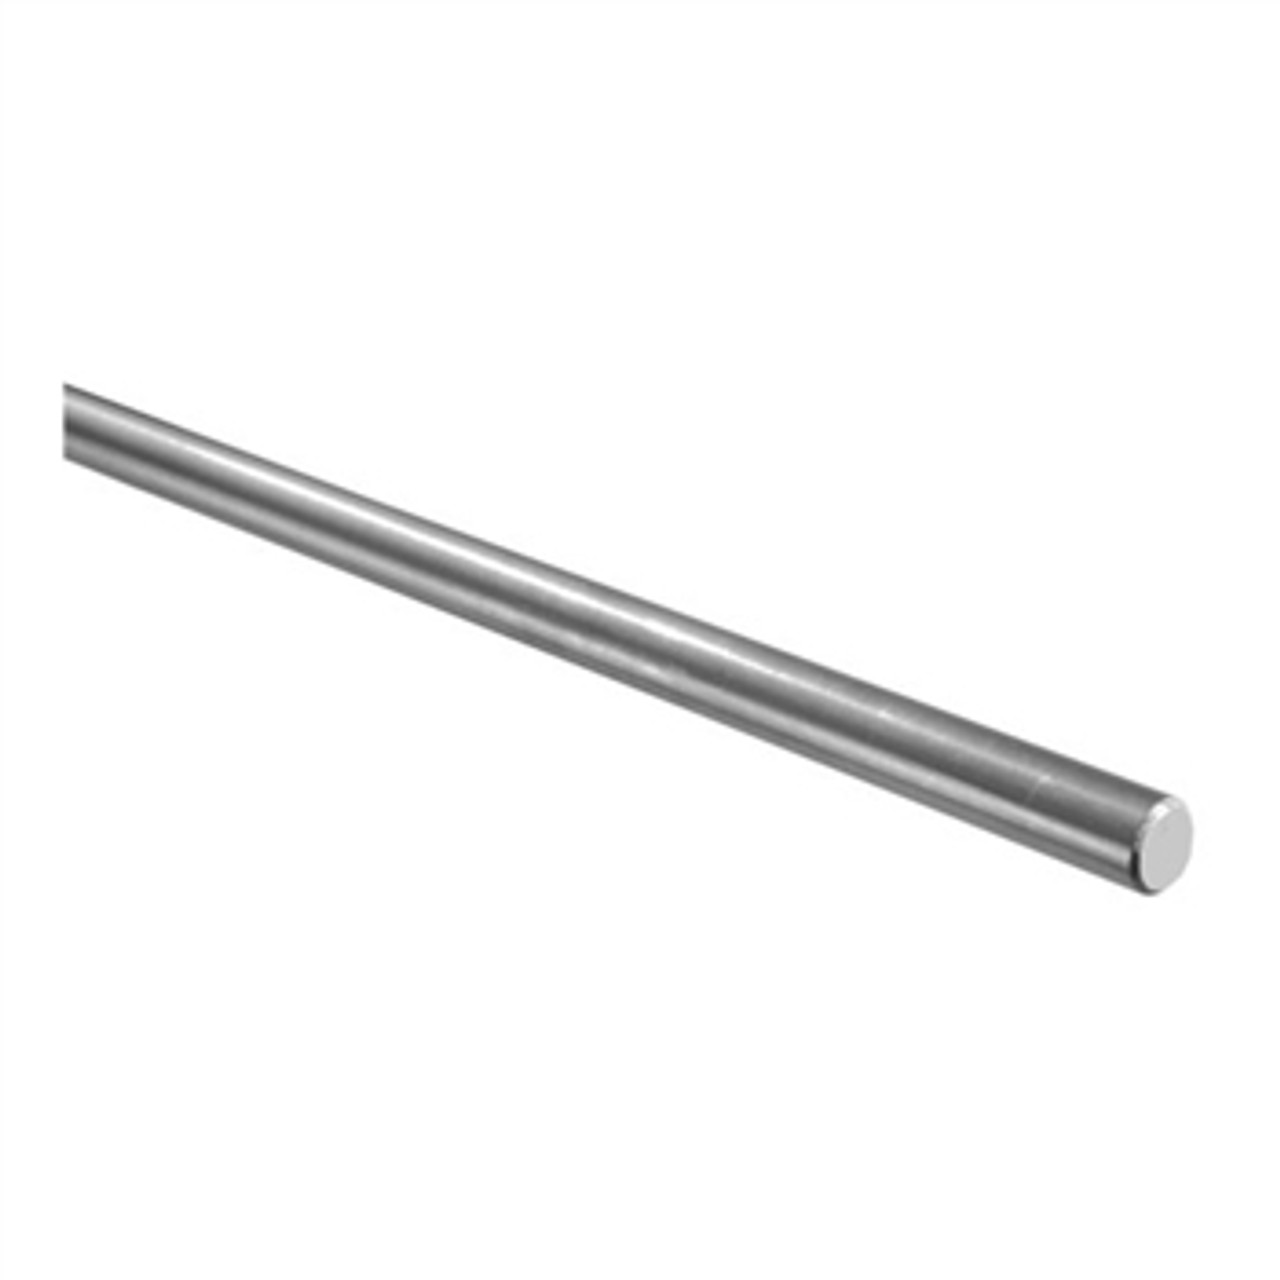 "E0051 3/8"" Stainless Round Bar, 10'"